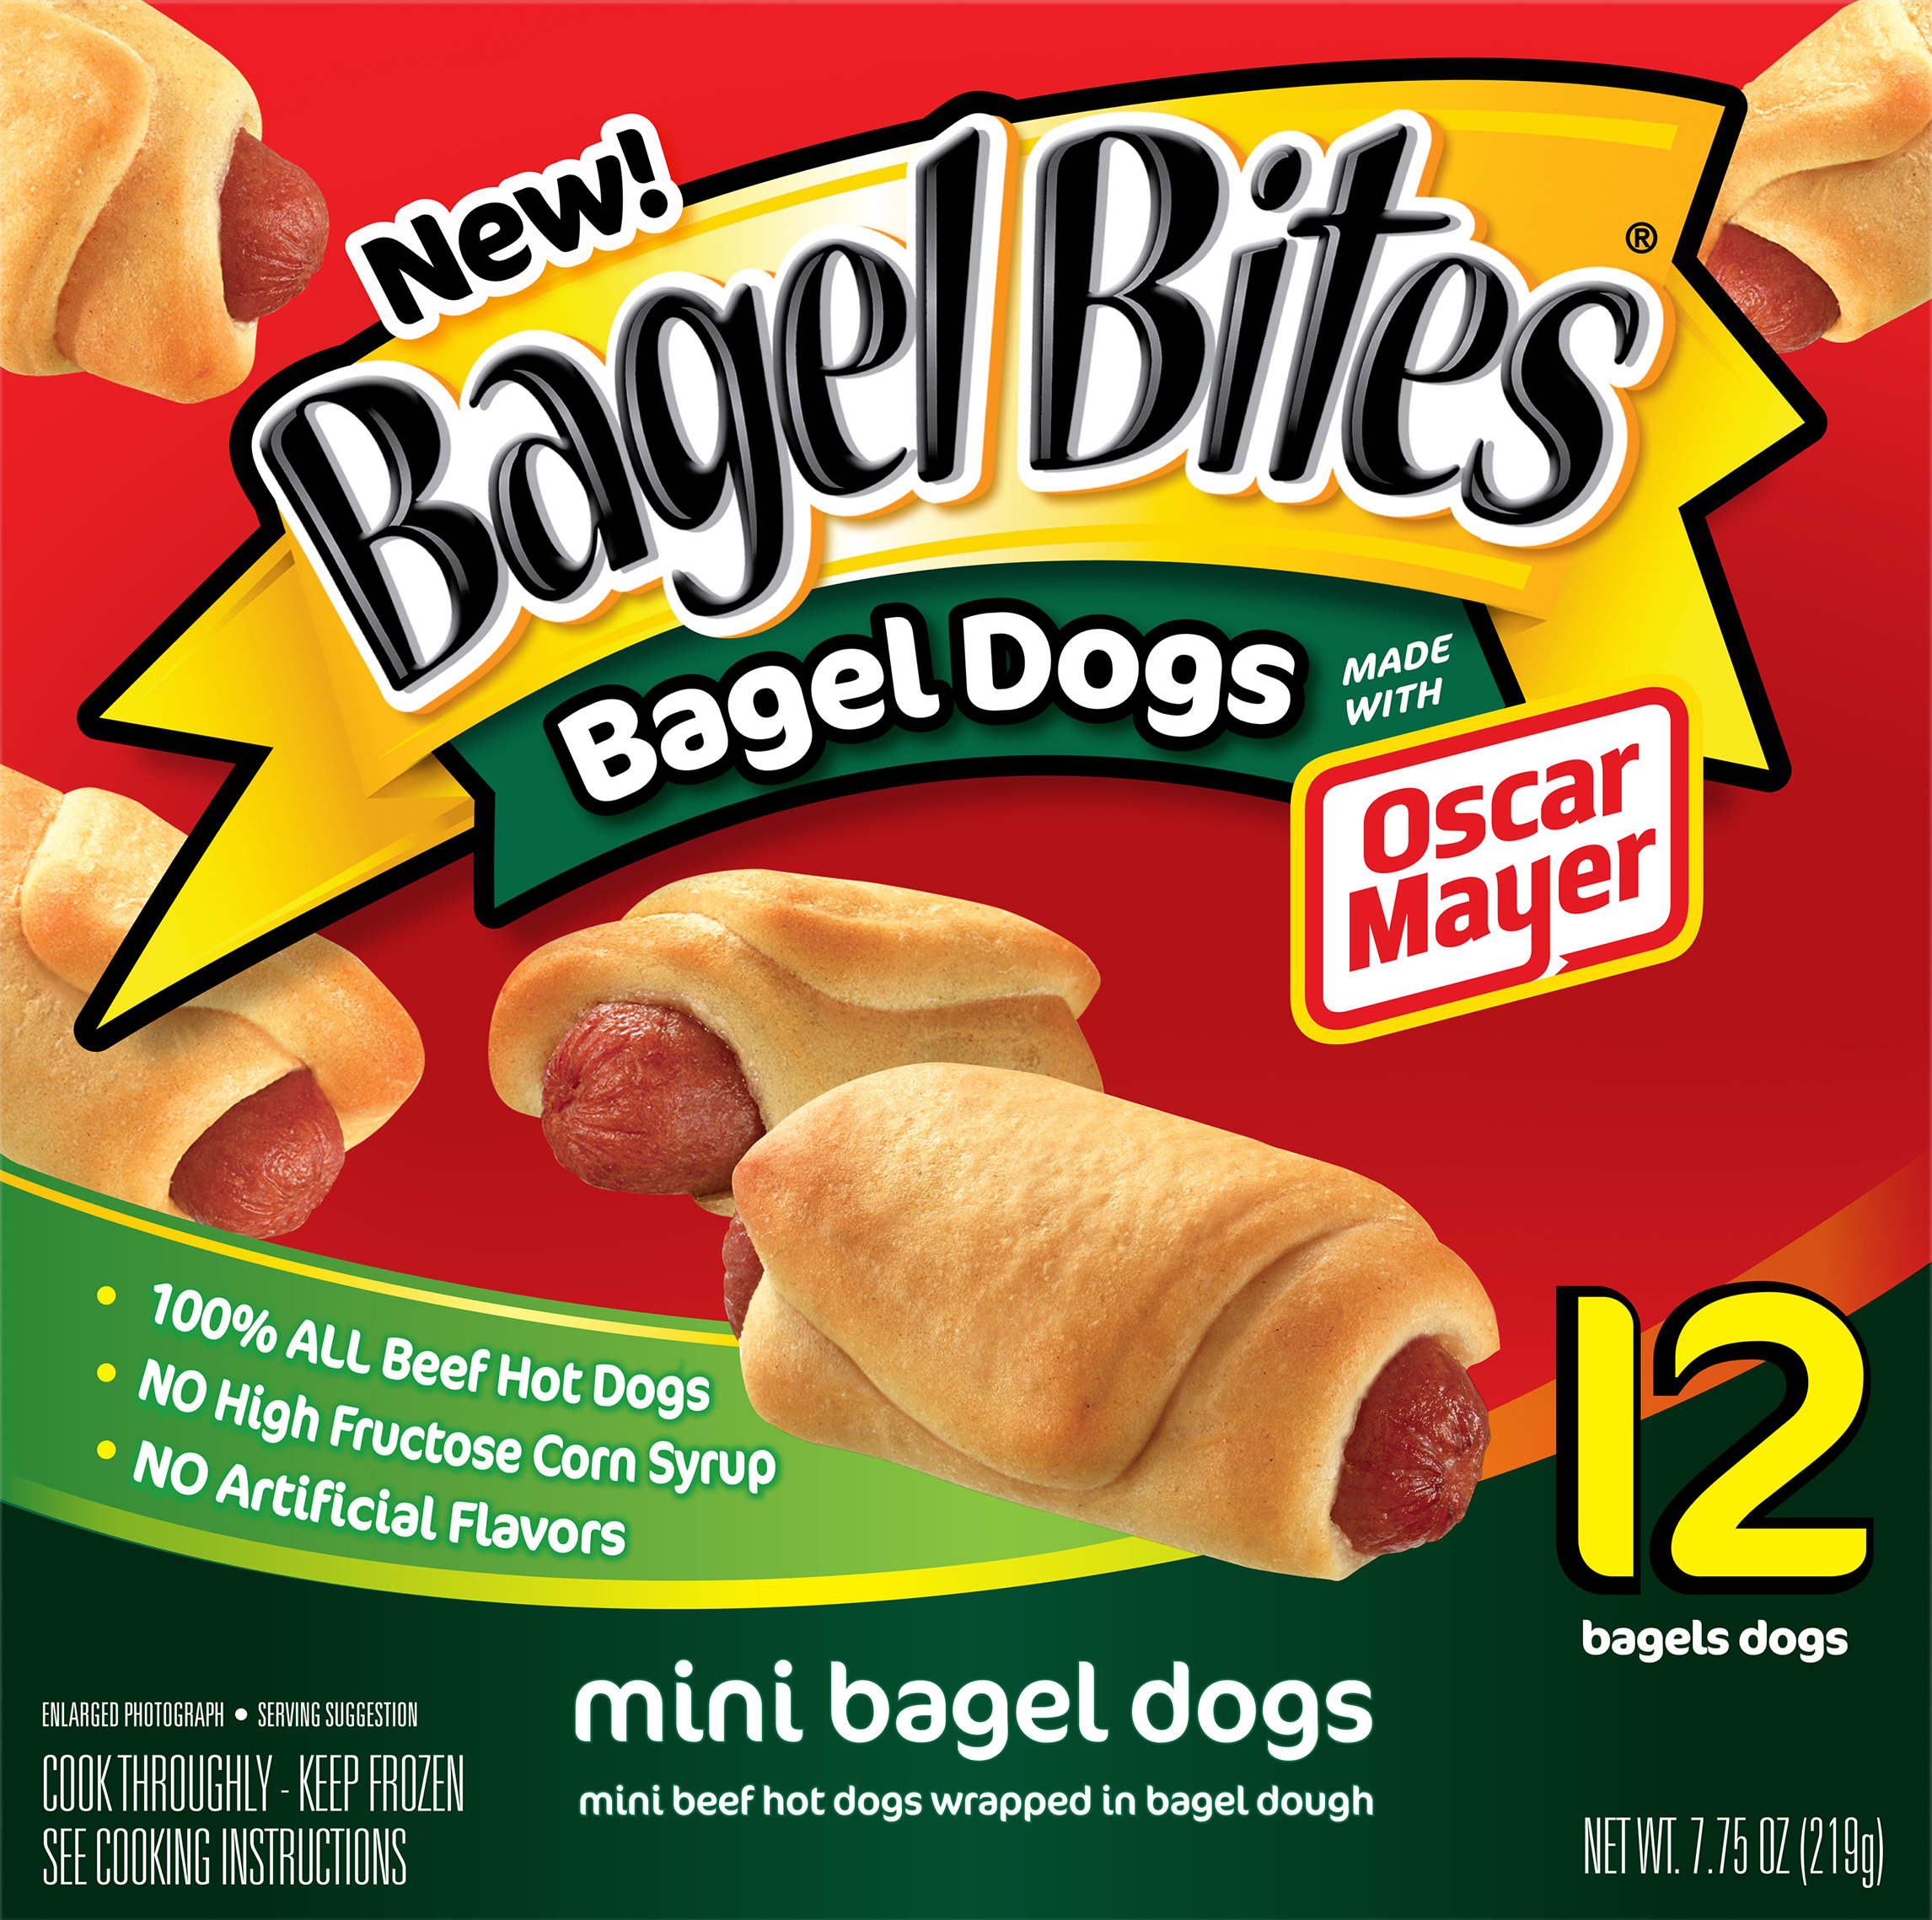 Bagel Bites Mini Bagel Dogs Are Perfect After School Snacking besides 50 Of The Best Kids Lunch And Snack Ideas besides Fabulous Friday moreover Oscar Mayer Bacon Nutrition Label additionally Healthiest Unhealthiest Store Bought Hot Dogs. on lunchables dogs